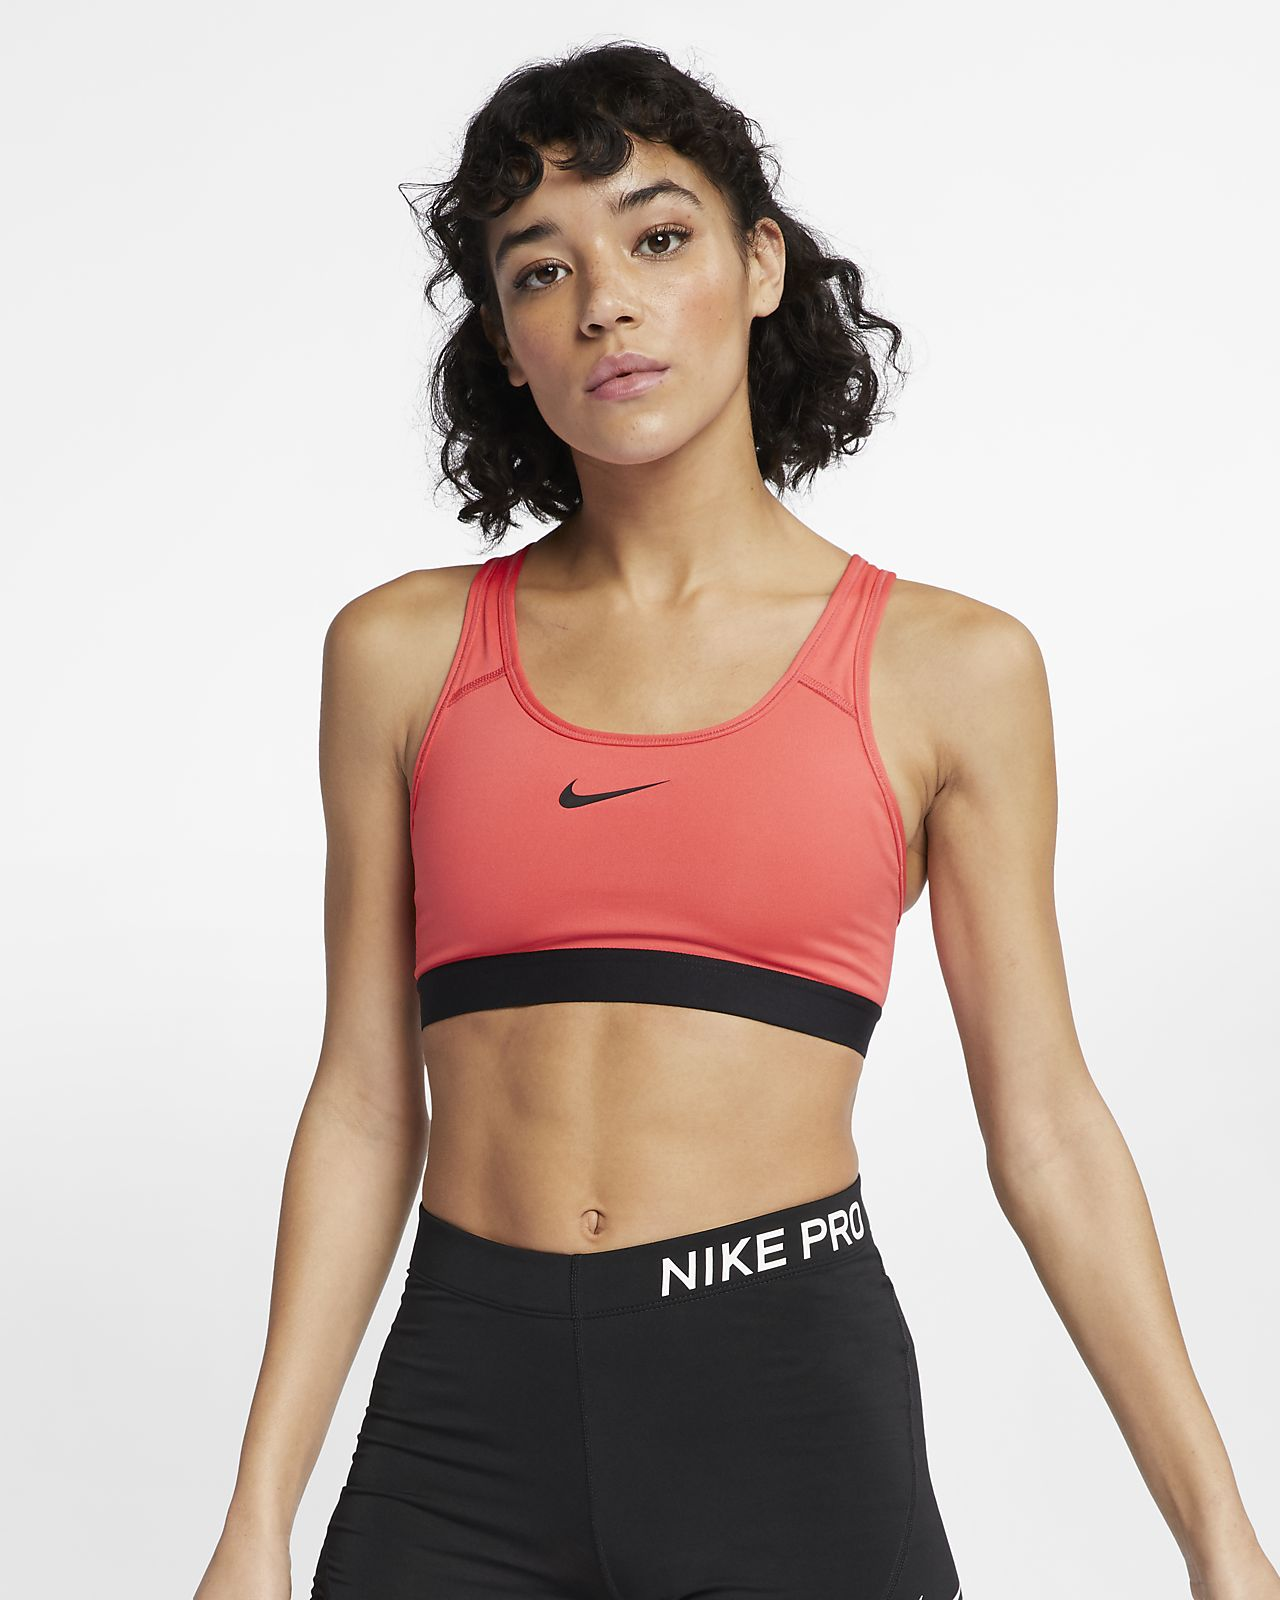 668d124a1bb9 Nike Classic Padded Women s Medium-Support Sports Bra. Nike.com